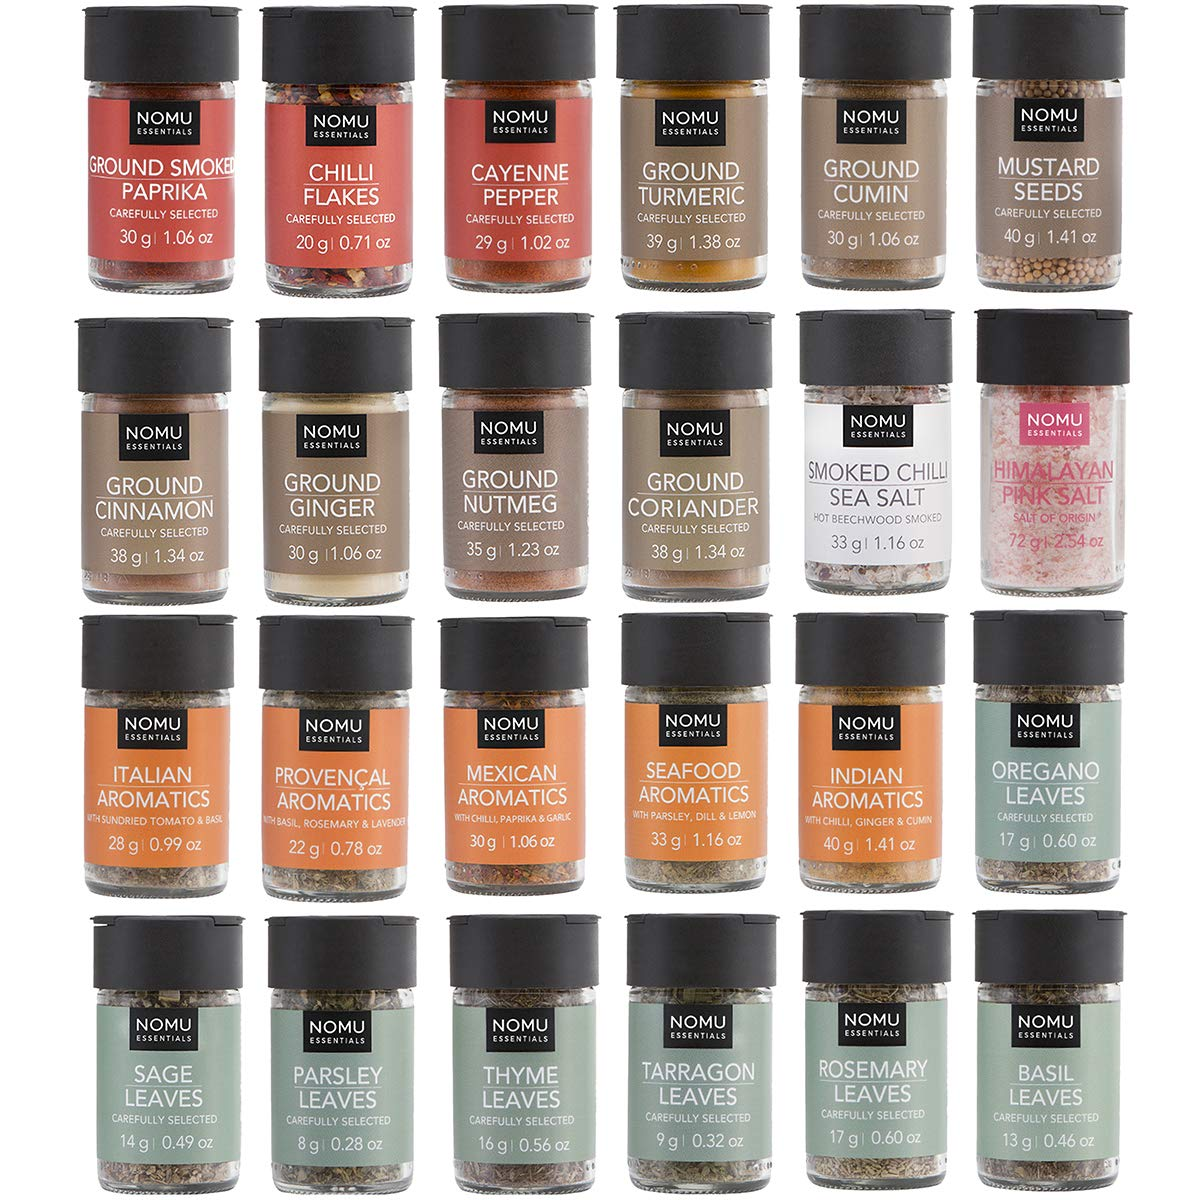 NOMU 24-Piece Starter Variety Set of Spices, Herbs, Chilis, Salts and Seasoning Blends Kit | Non-irradiated, No MSG or Preservatives